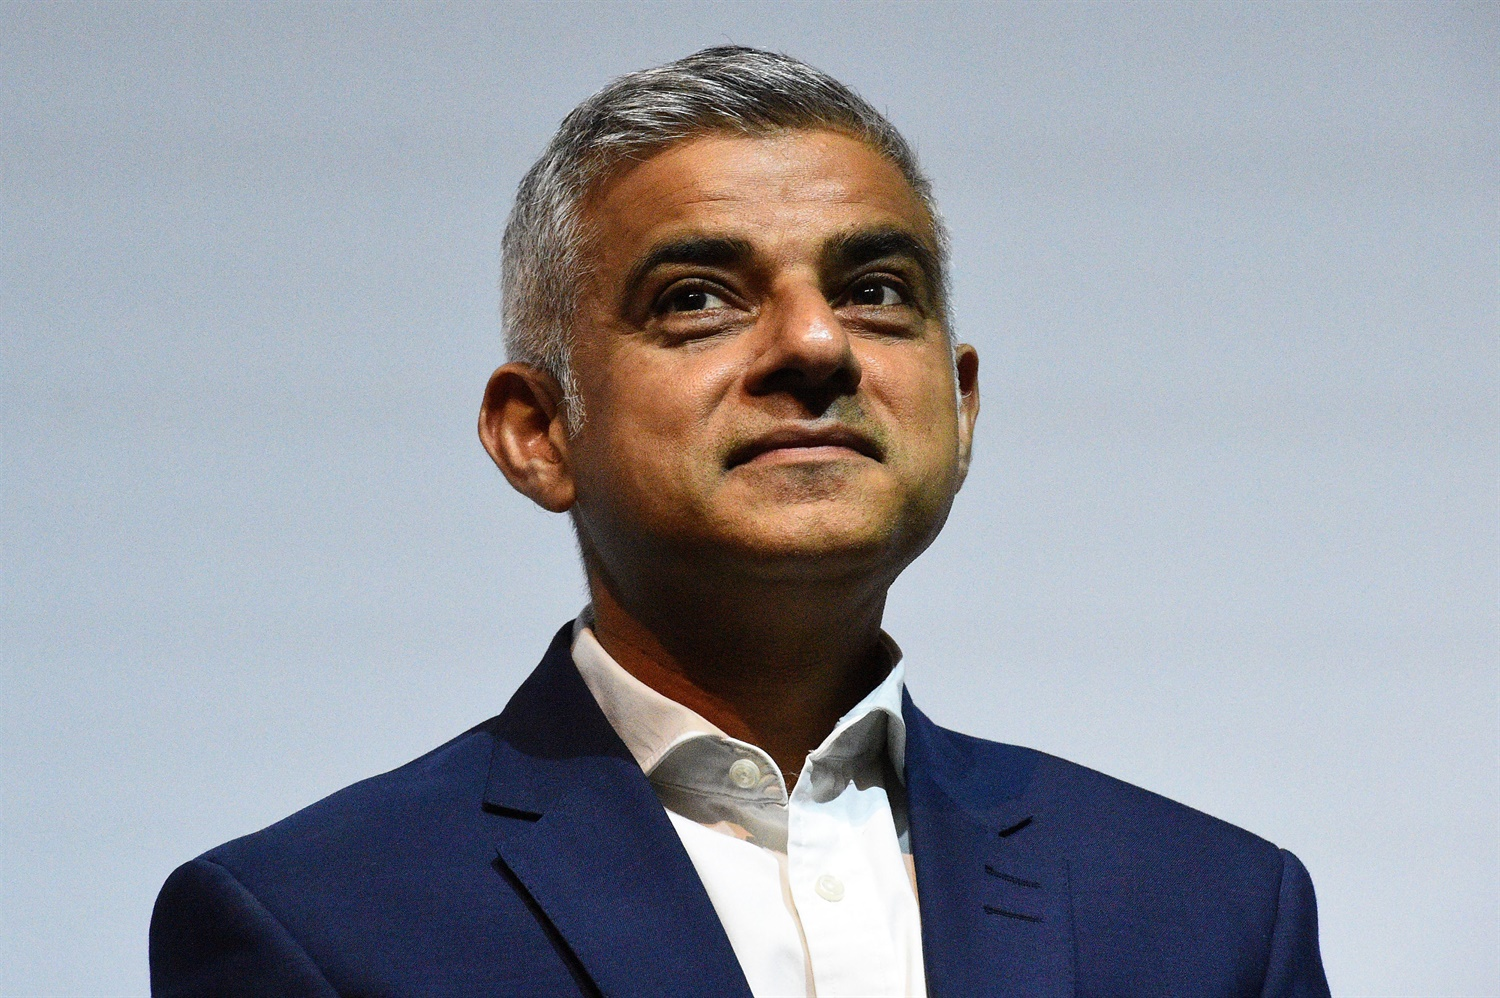 London mayor calls for government to devolve rail infrastructure powers and funding to TfL